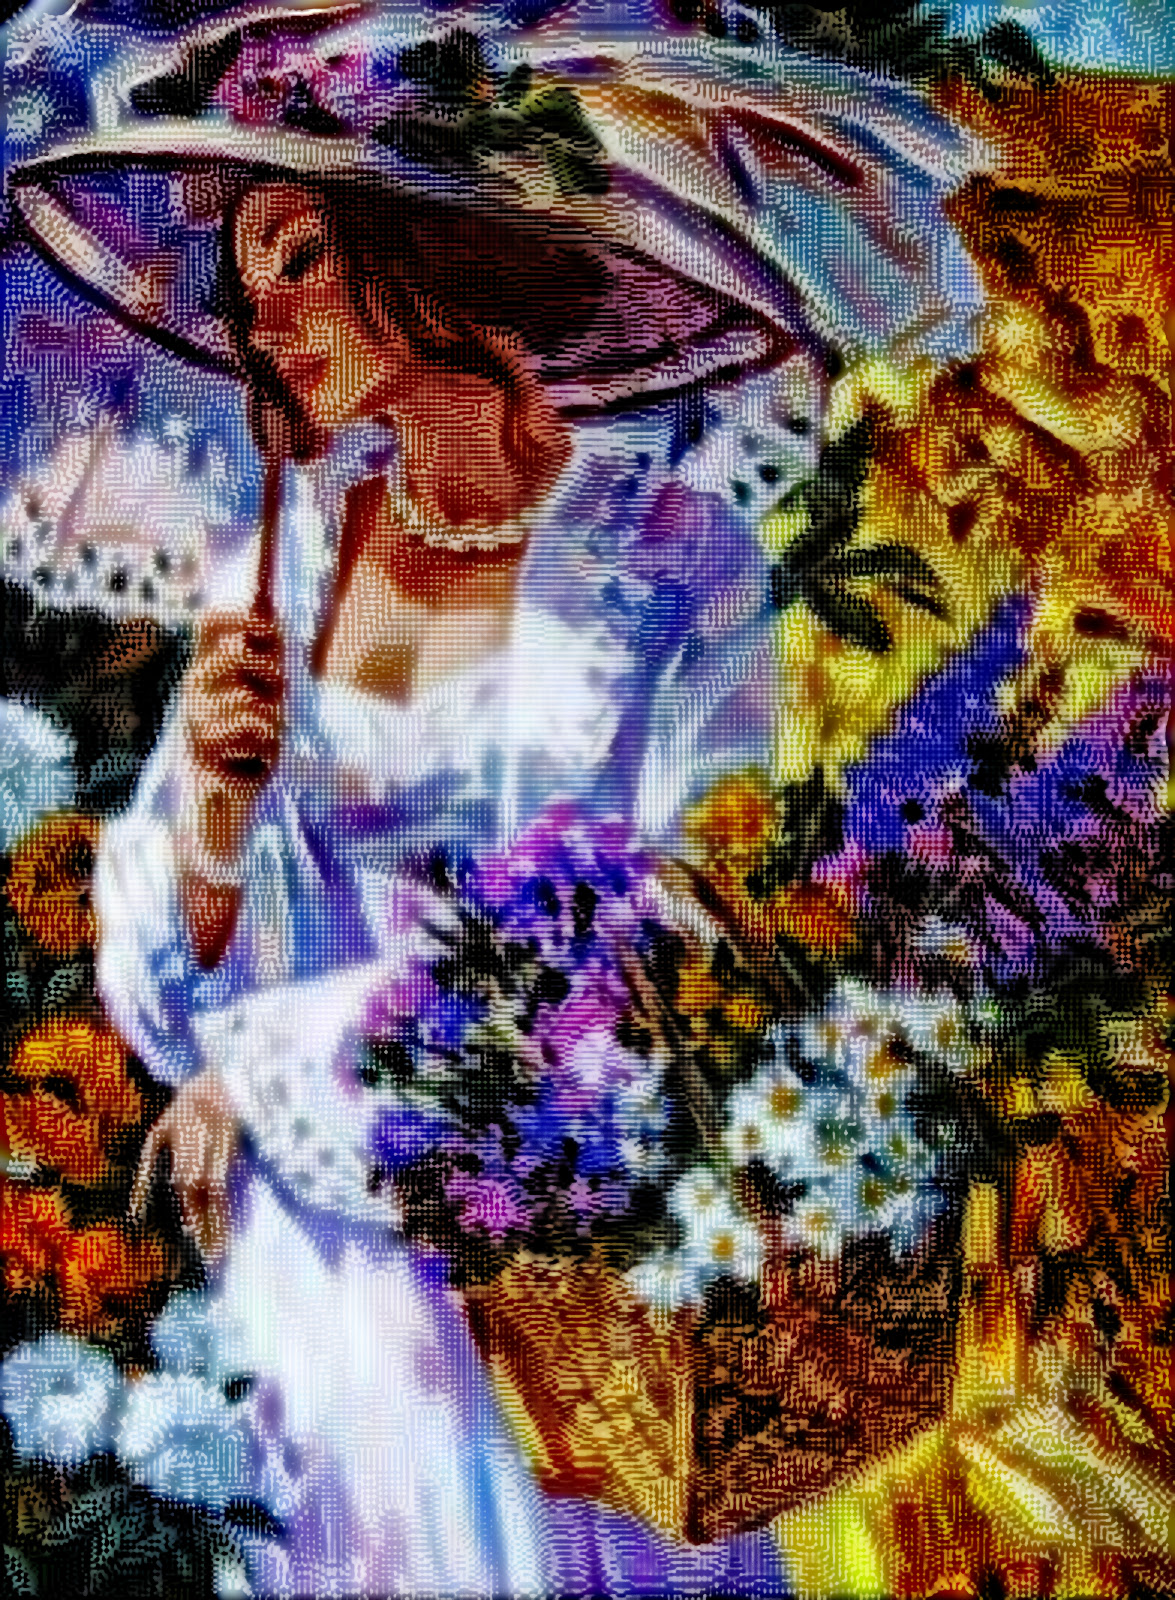 woman with flowers-wireframemaplyle-3,40,1,0-hard light.jpg